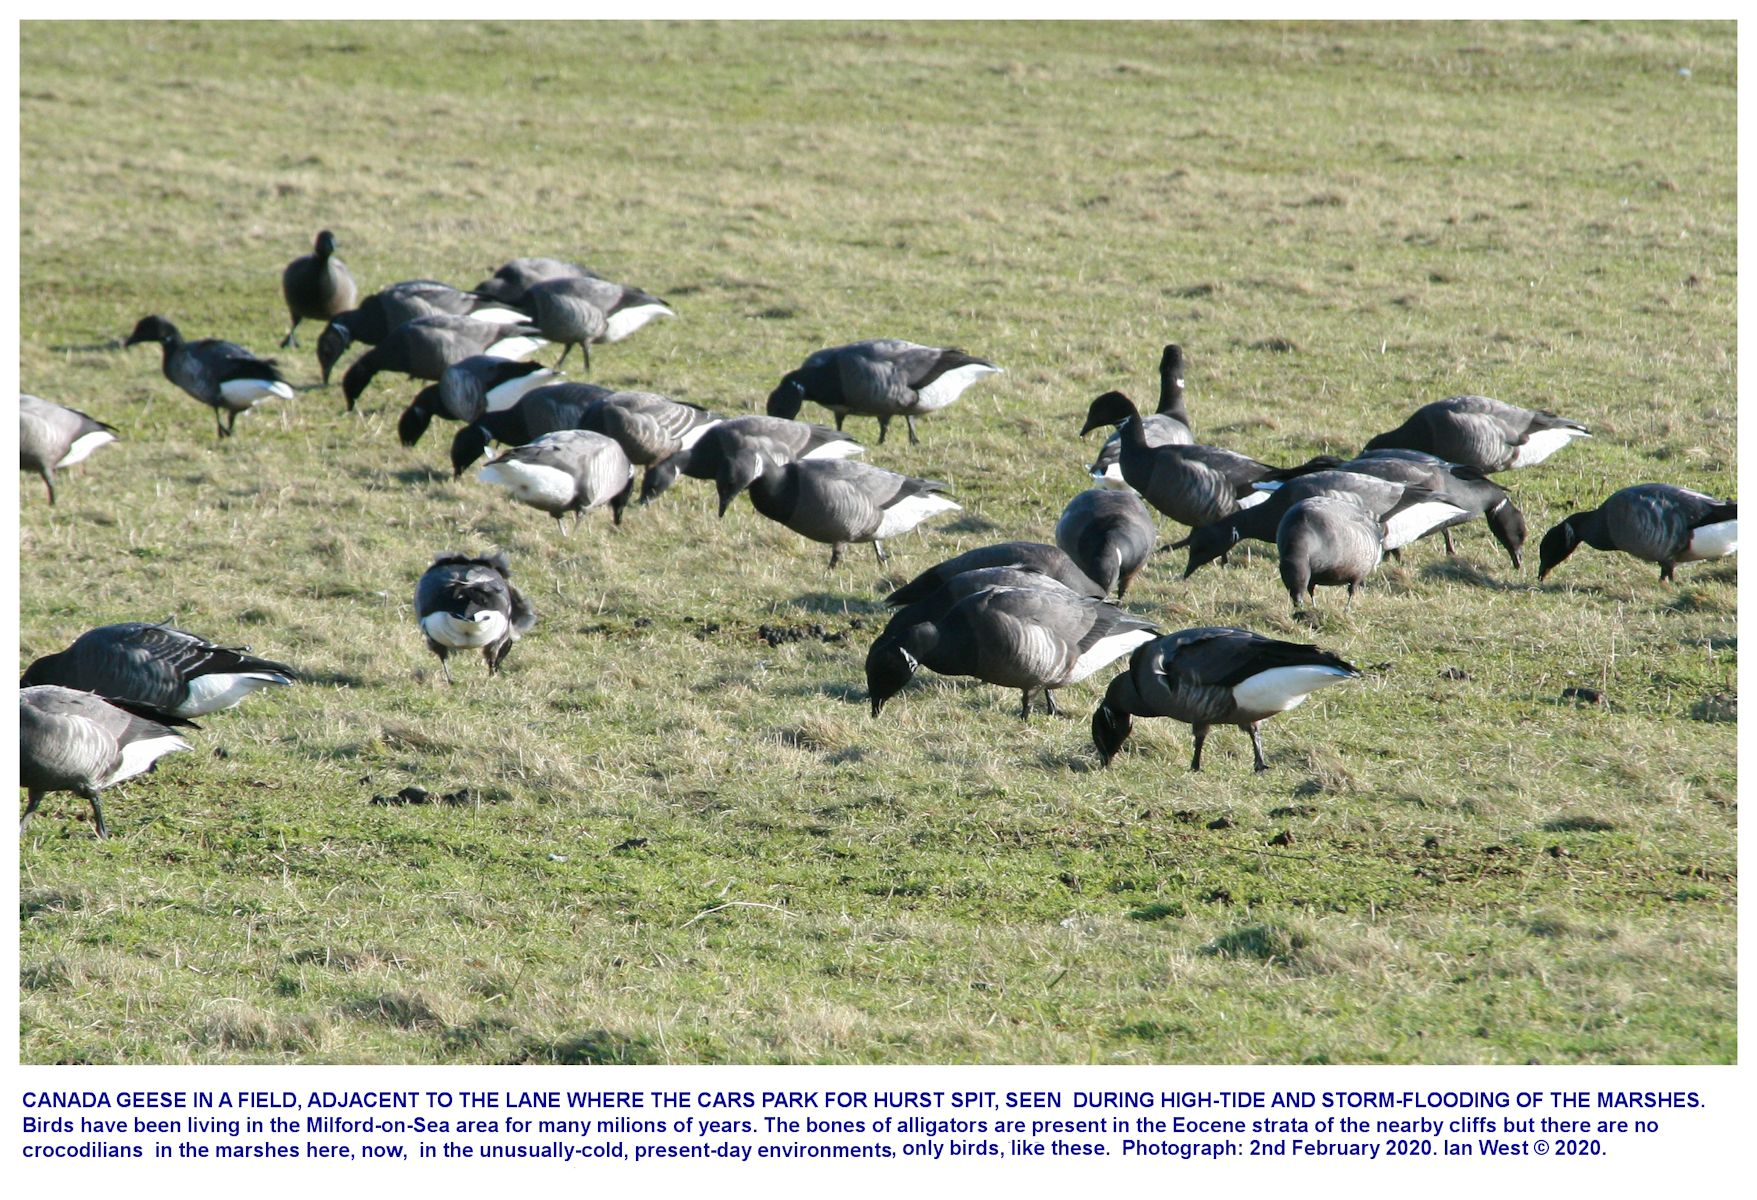 Canada Geese in a field near Hurst Spit, Milford-on-sea, they have moved inland in stormy conditions and sea-flooding of the marshes near Hurst Spit, early February 2020